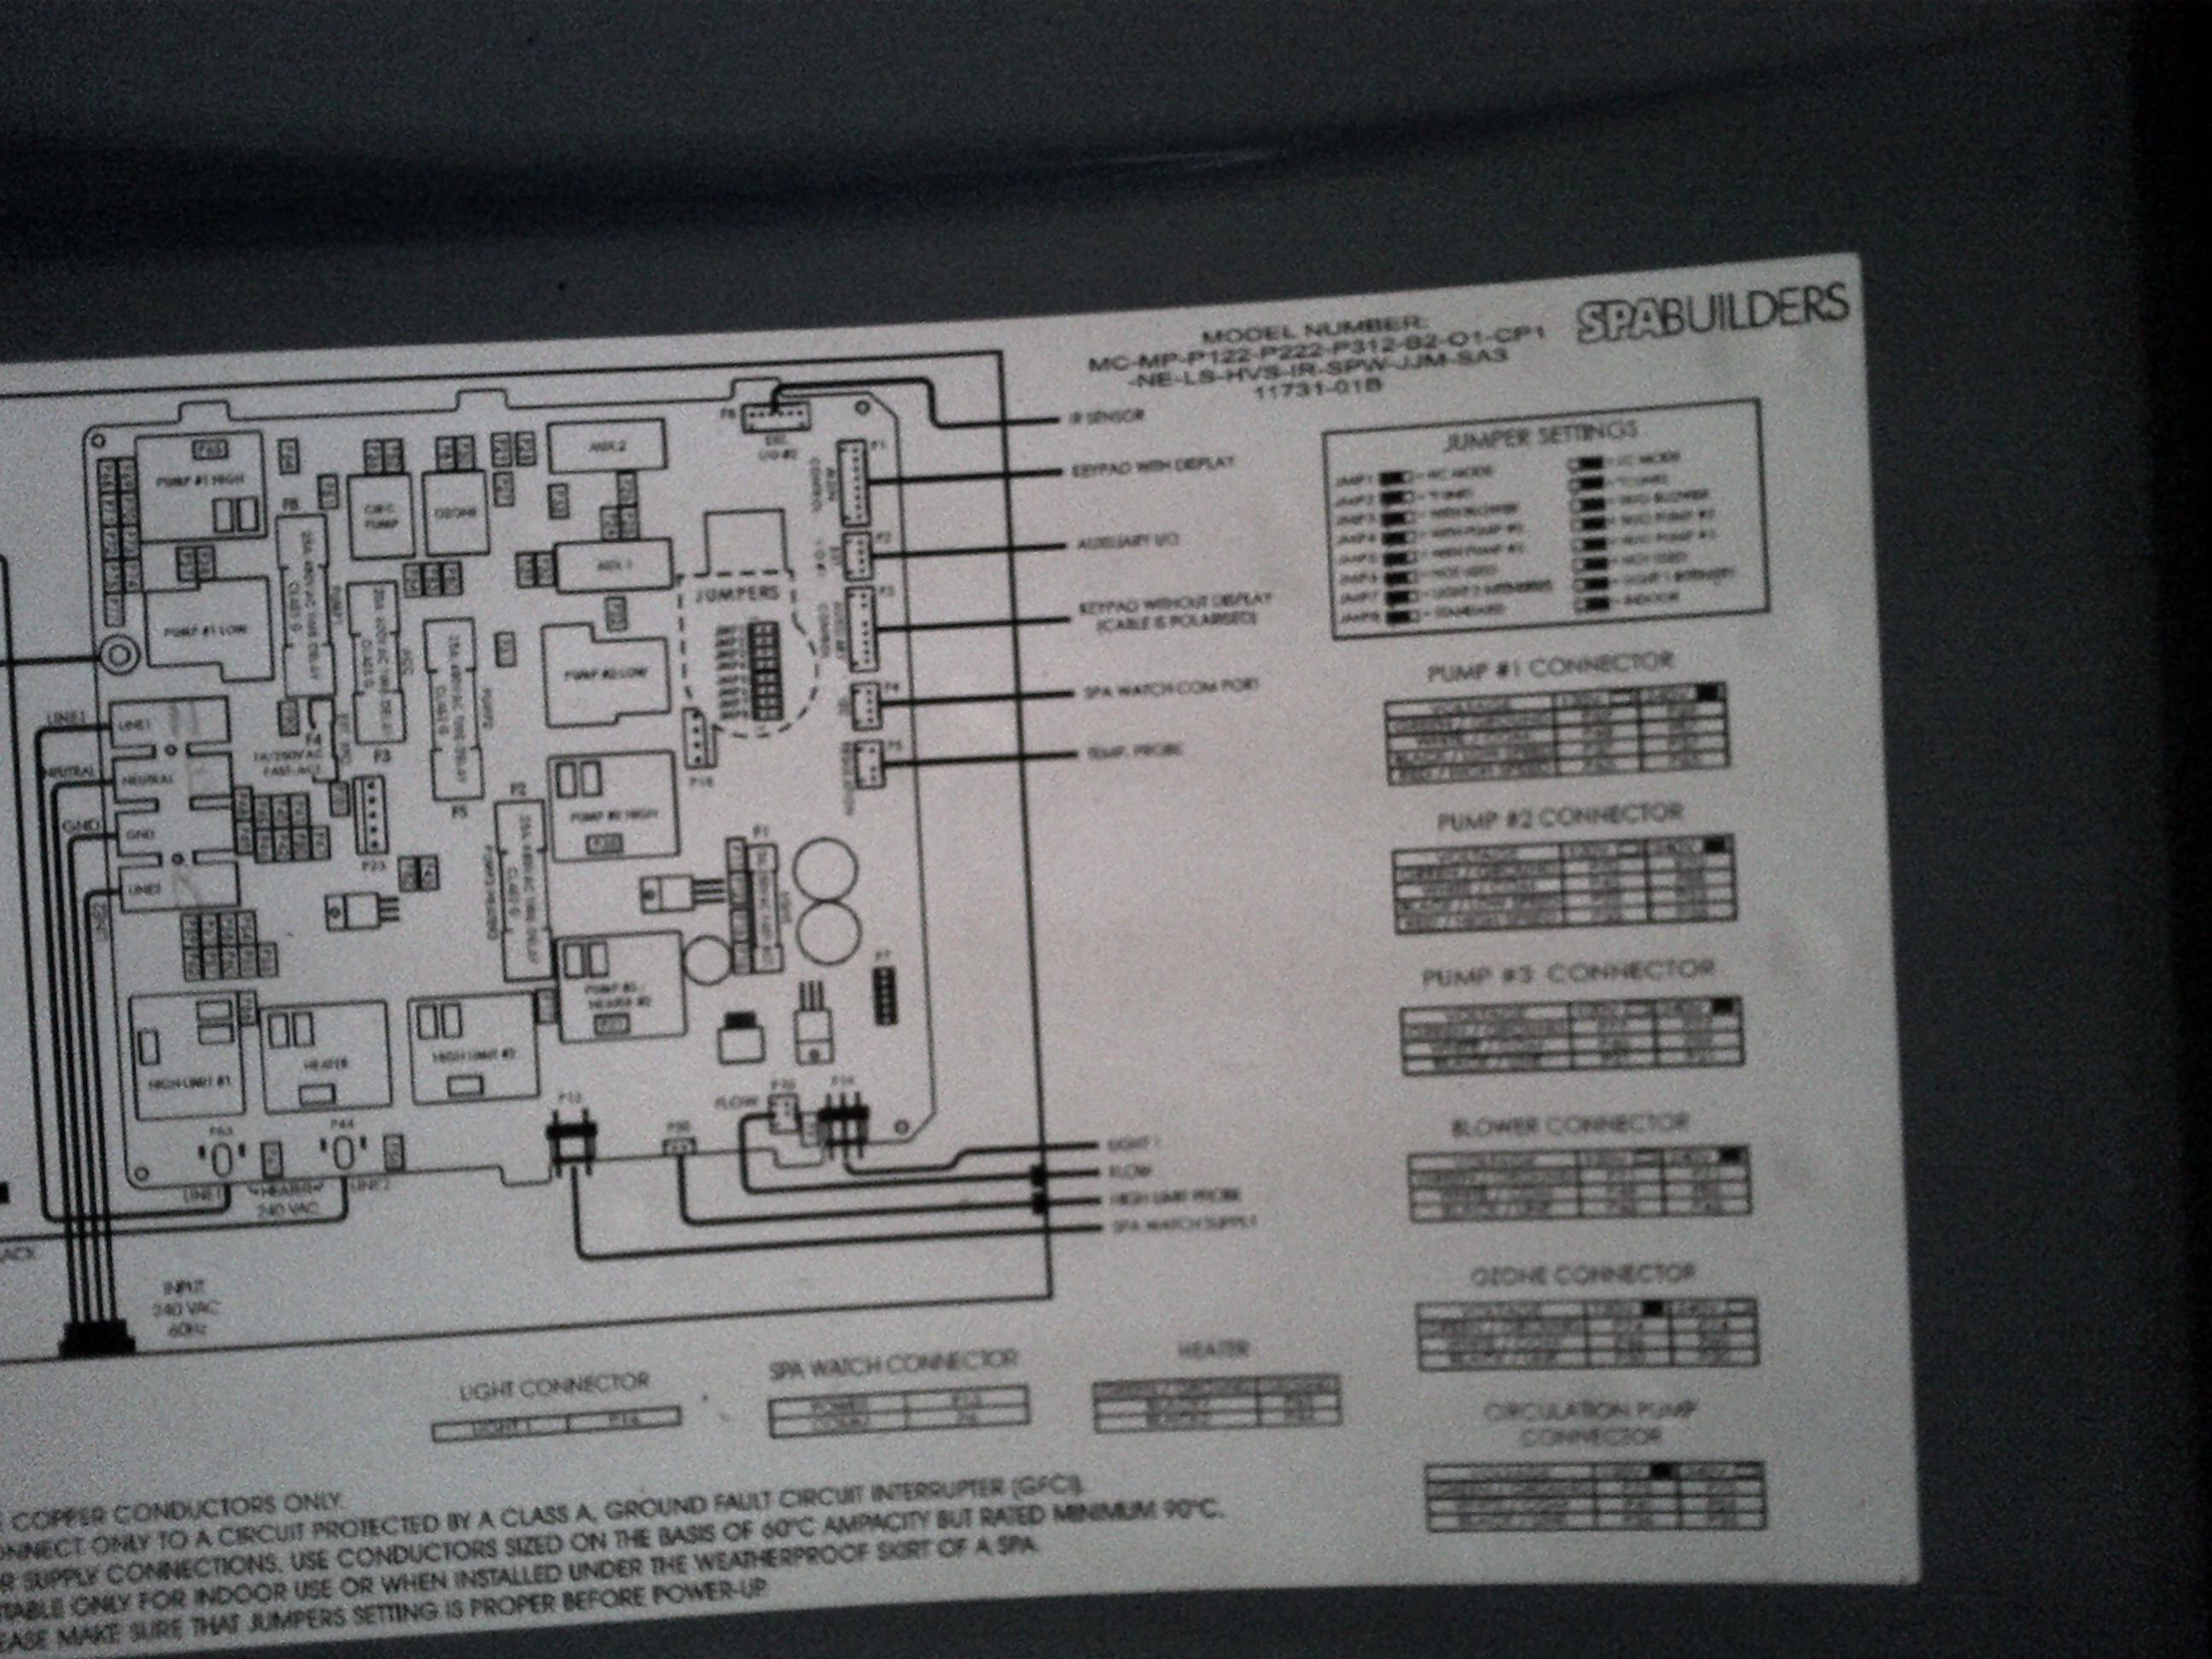 cal spa heater wiring diagram online shopping use case architecture iq hot springs tub ~ odicis